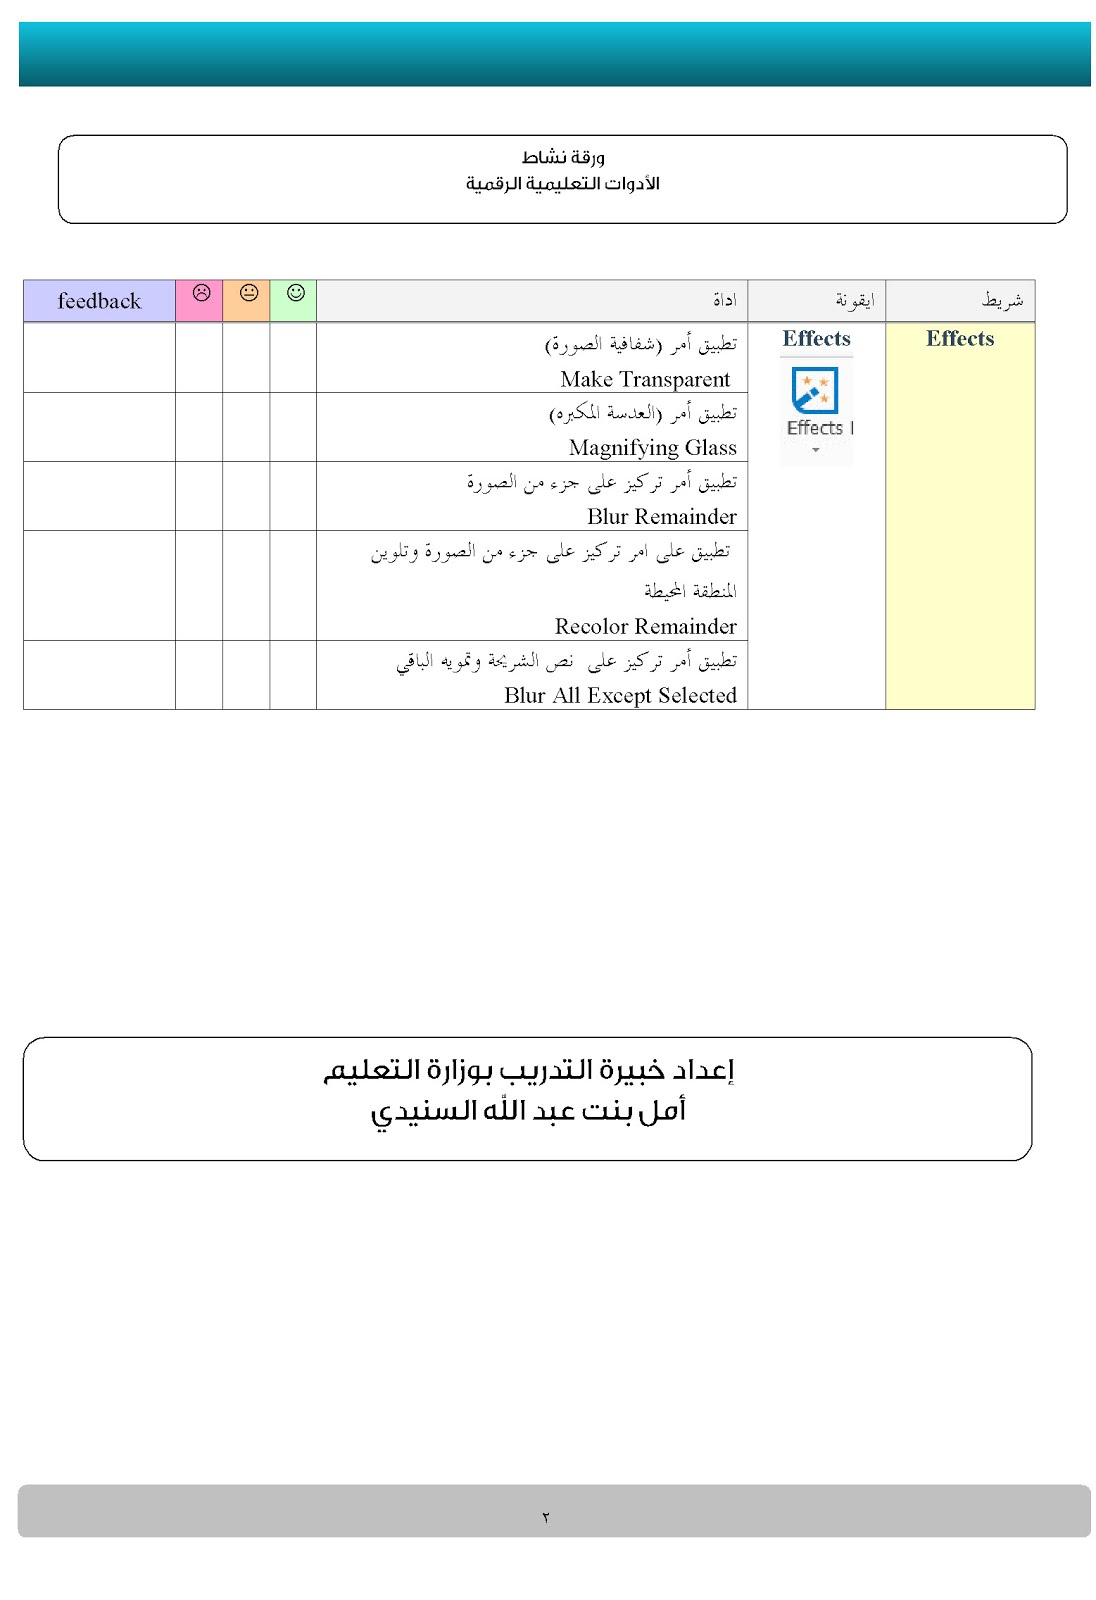 تحميل powerpointlabs